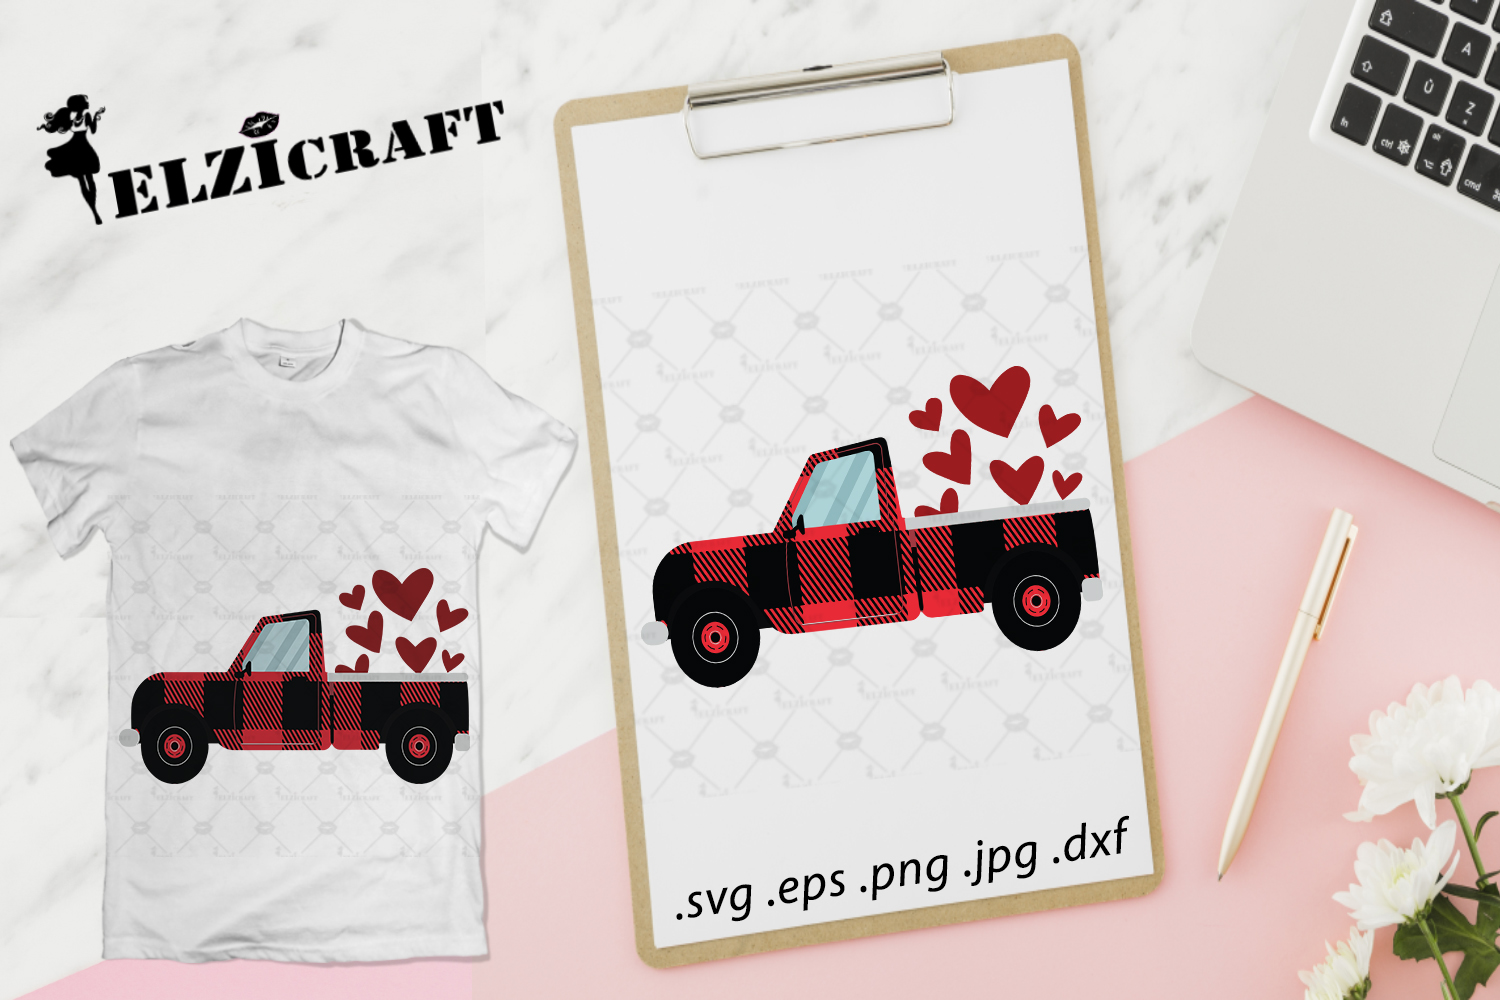 Download Free Buffalo Plaid Truck Valentine S Day Graphic By Elzicraft for Cricut Explore, Silhouette and other cutting machines.